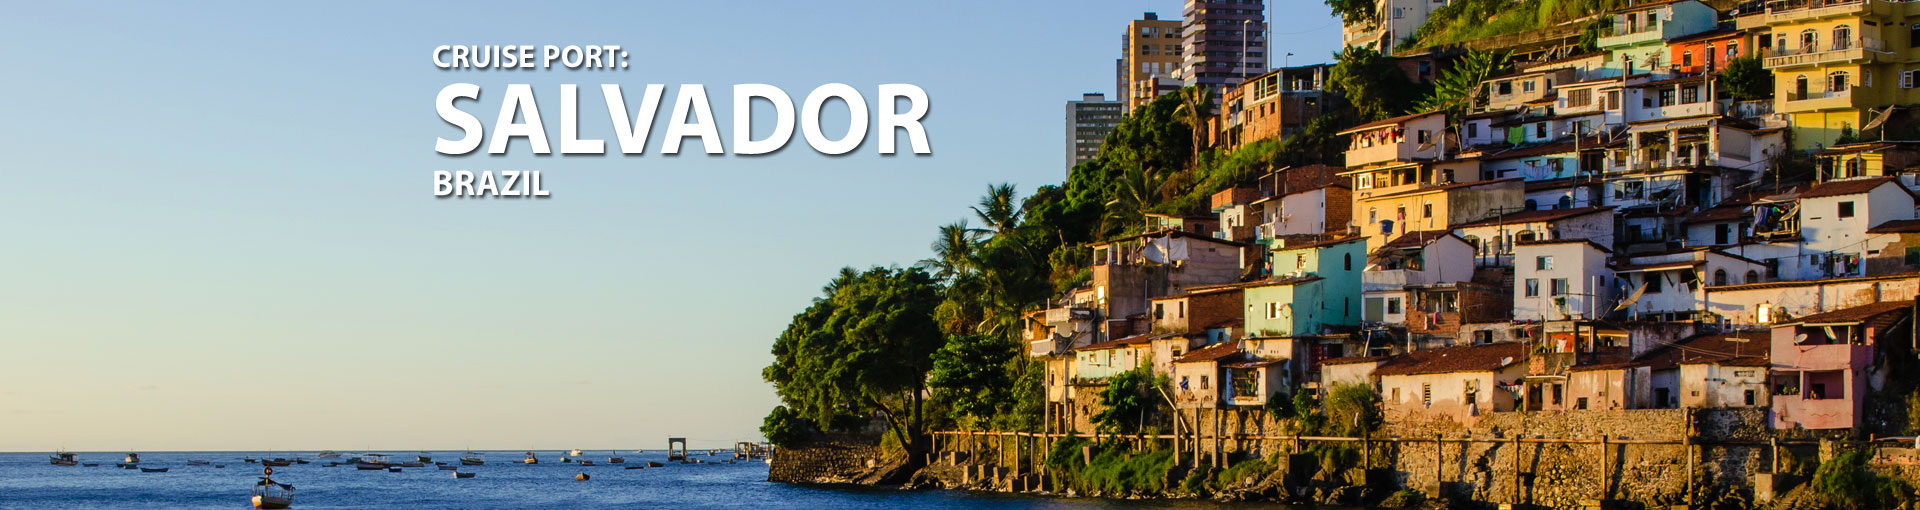 Cruises to Salvador, Brazil